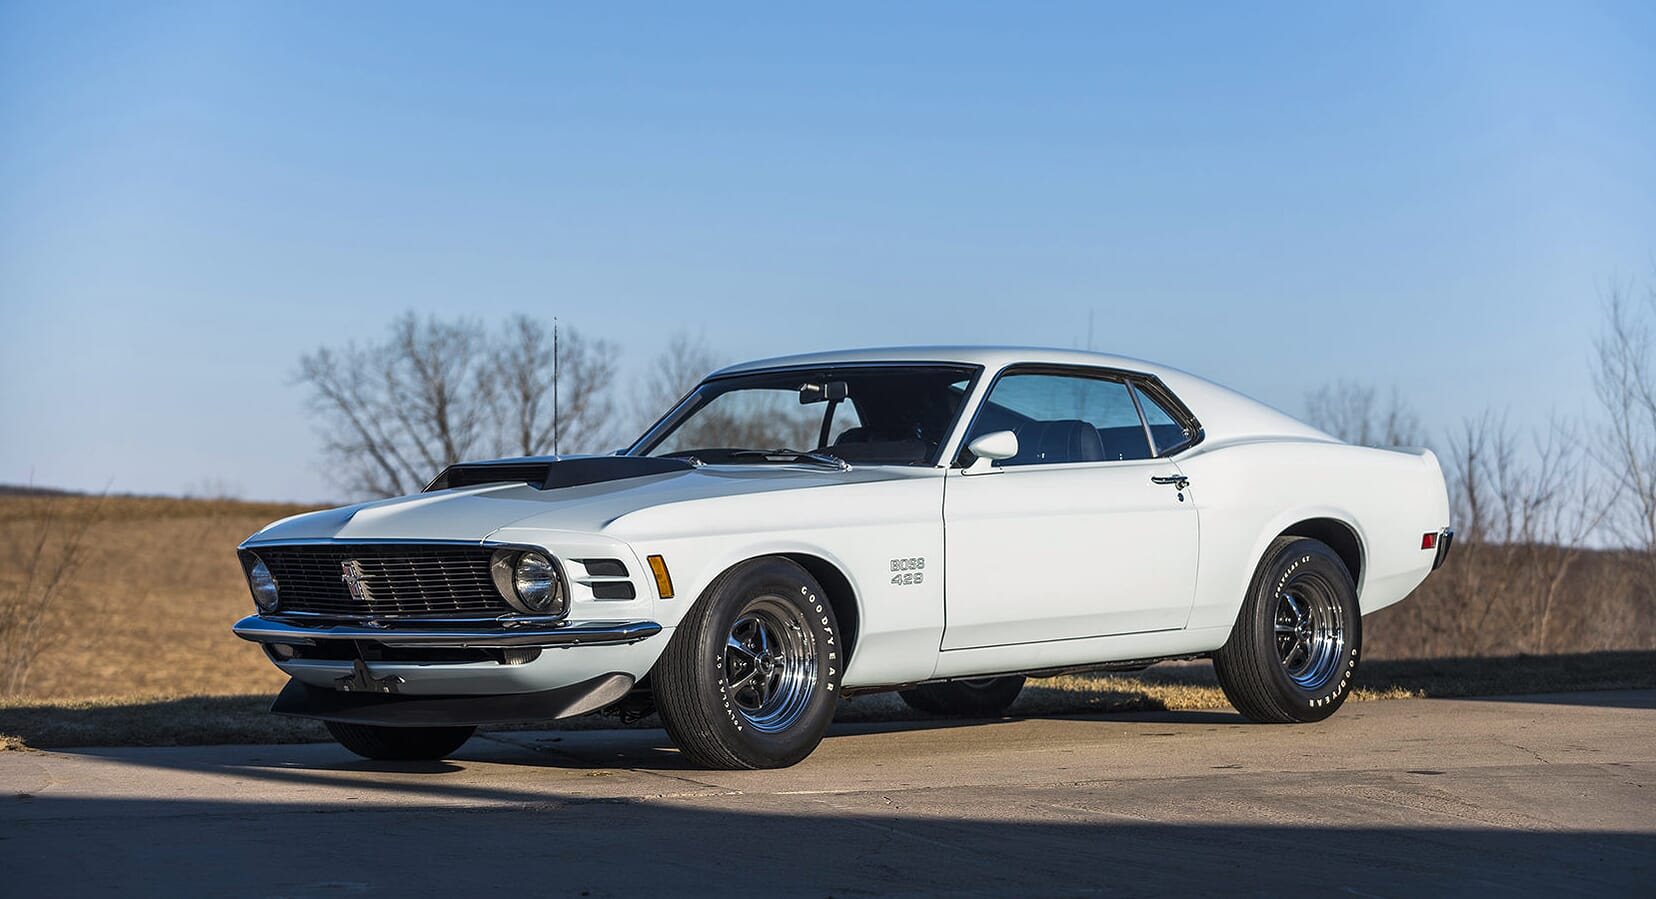 Classic Car Find of The Week: The 1970 Ford Mustang Boss 429 Fastback